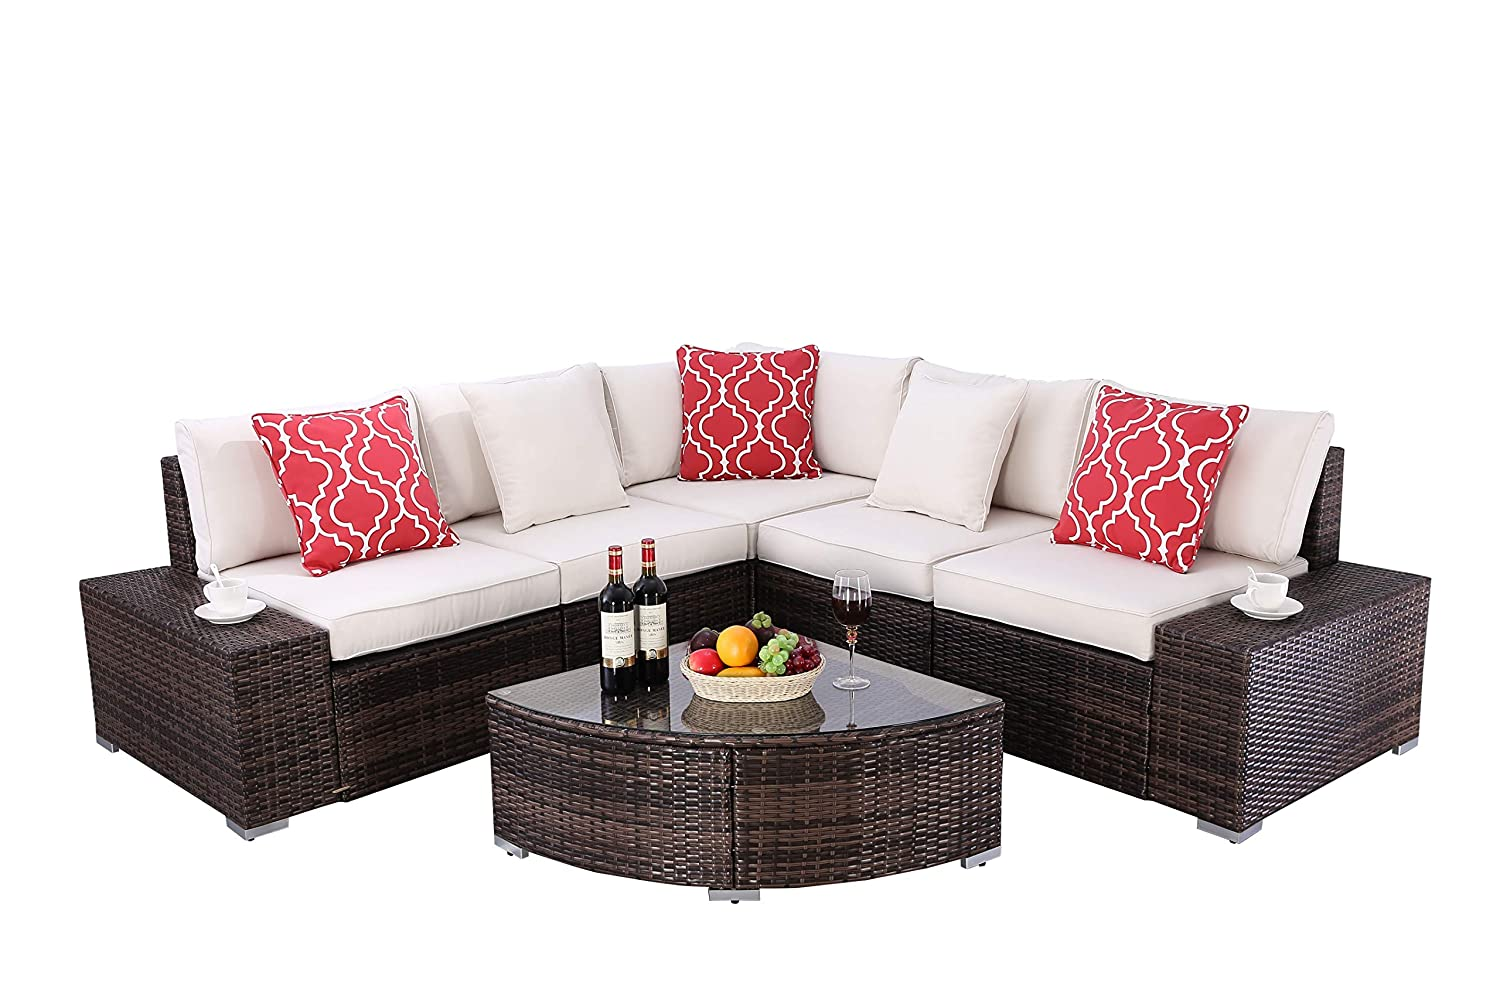 Do4U 6 Pieces Outdoor Patio Furniture Sectional Conversation Set, All-Weather Wicker Rattan Sofa Beige Seat Back Cushions Brown